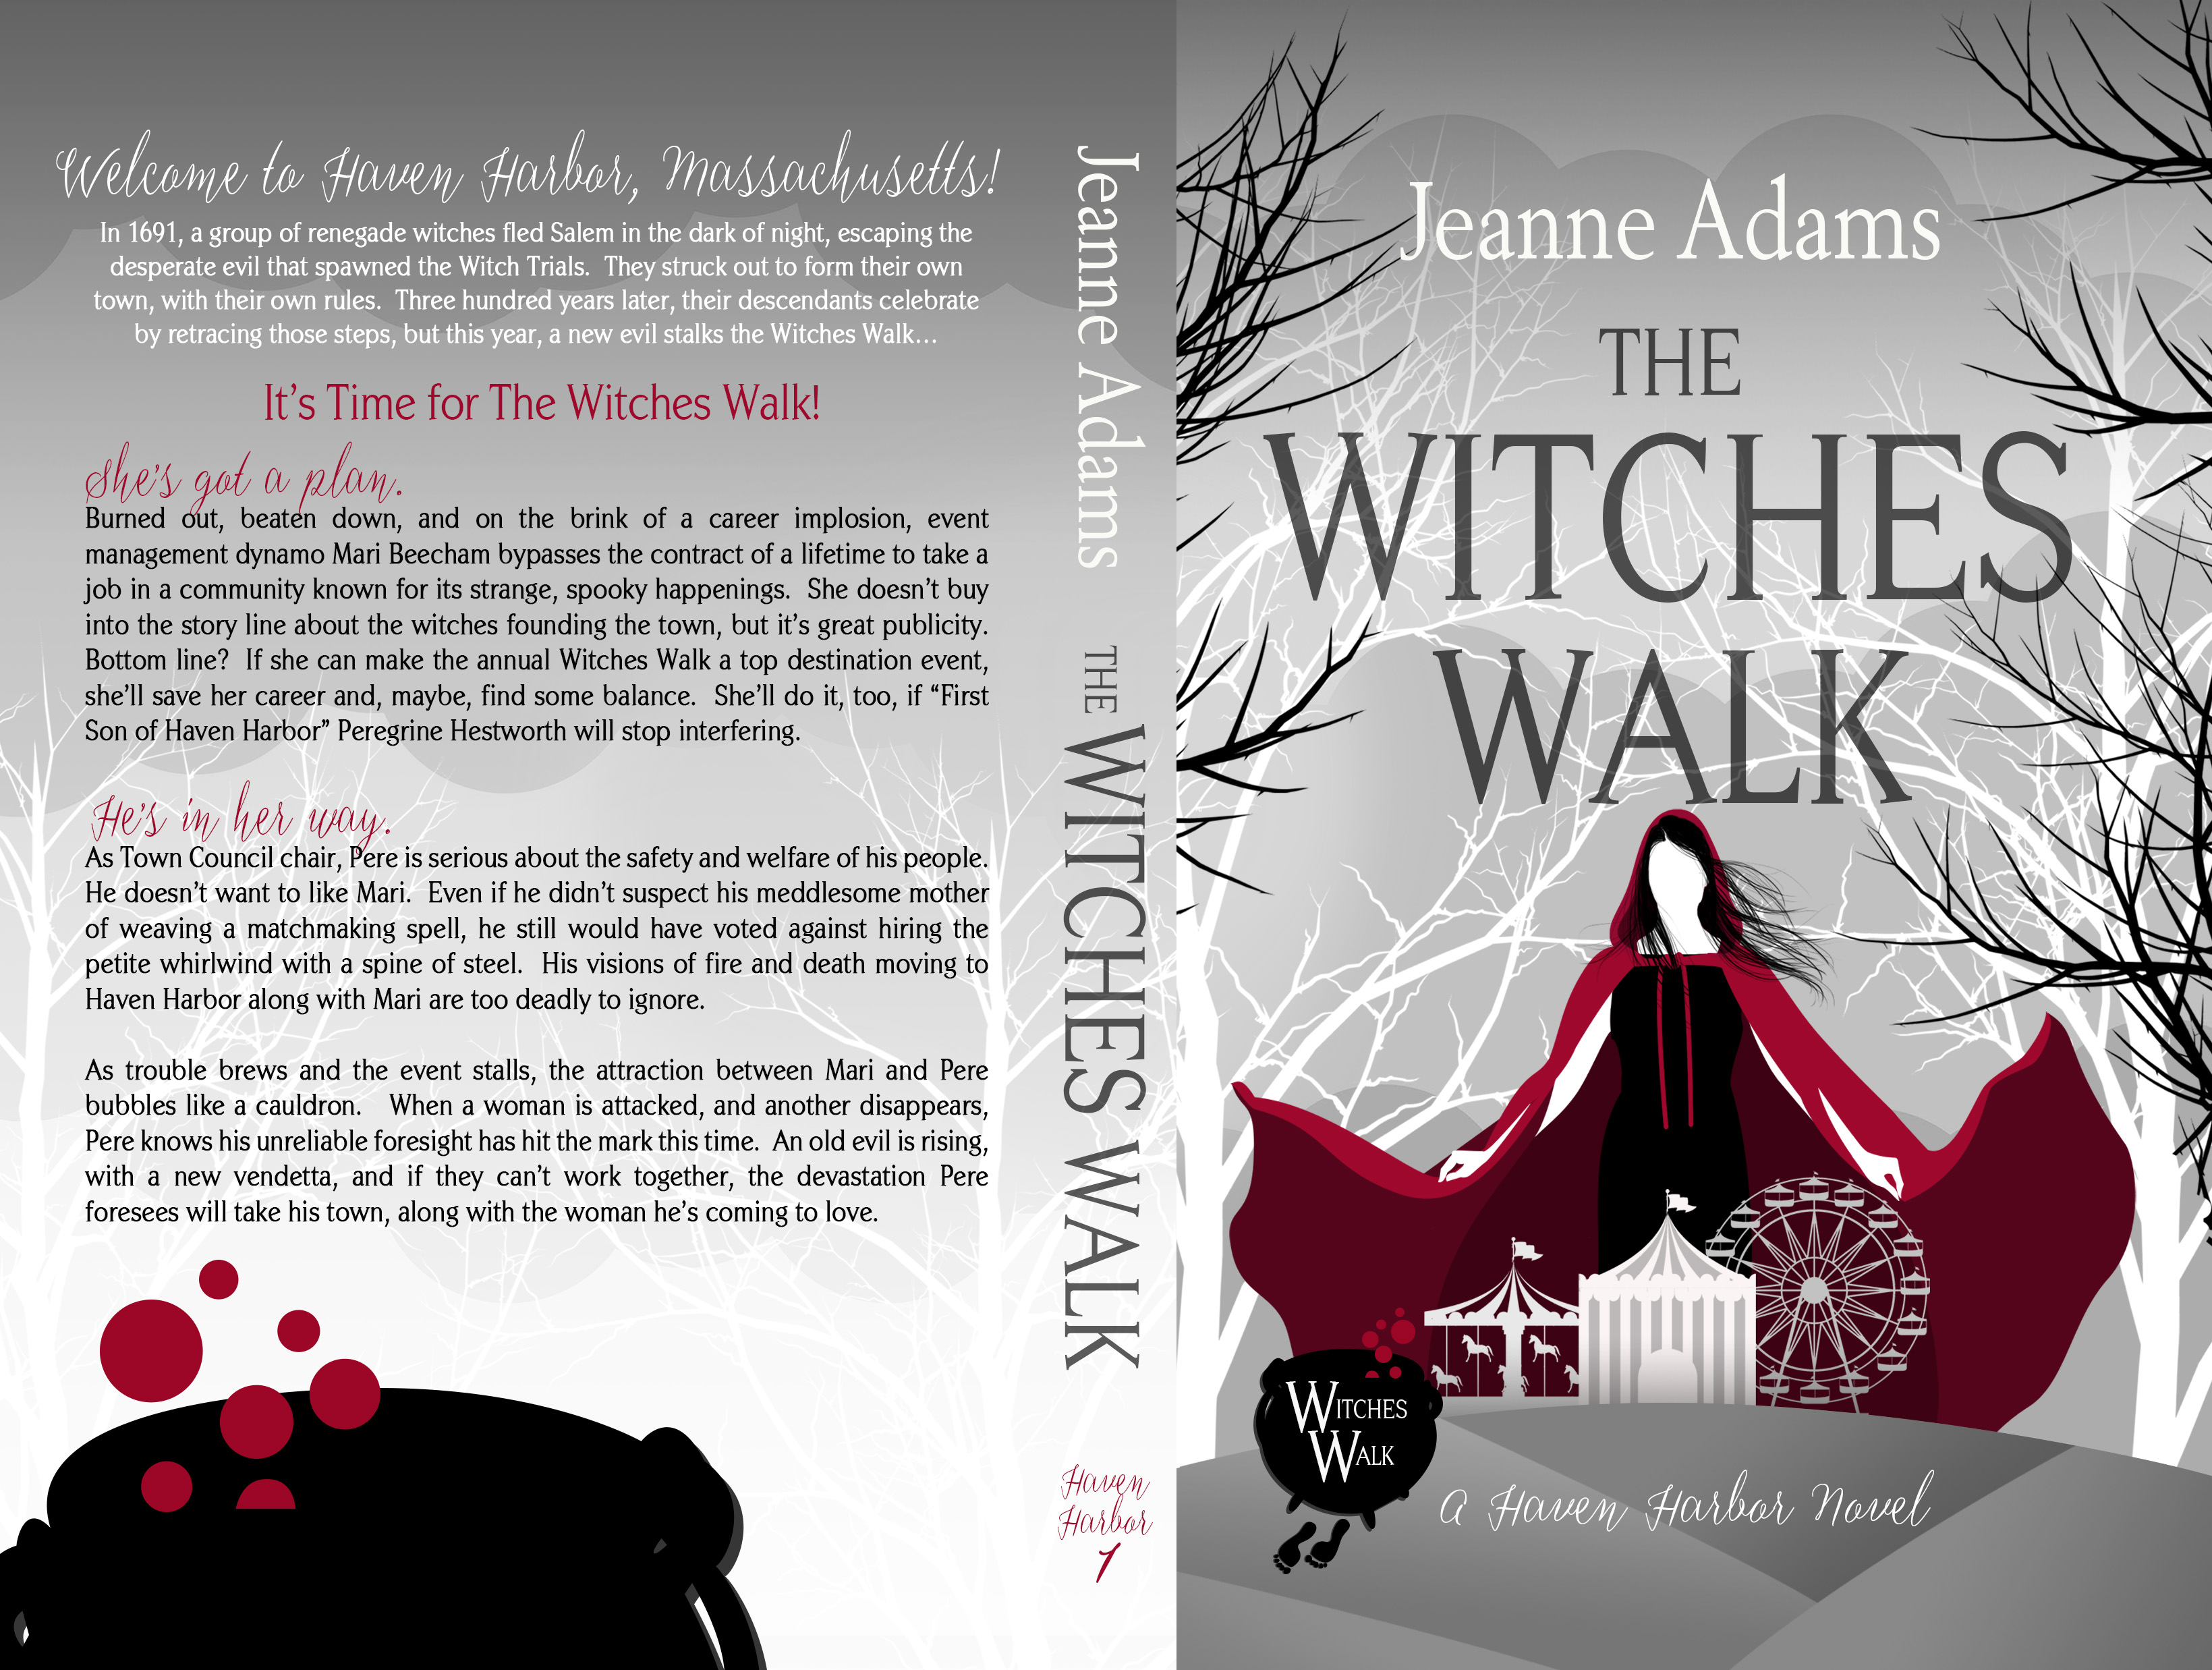 The Witches Walk full 5 x 8 WRONG PAGE COUNT